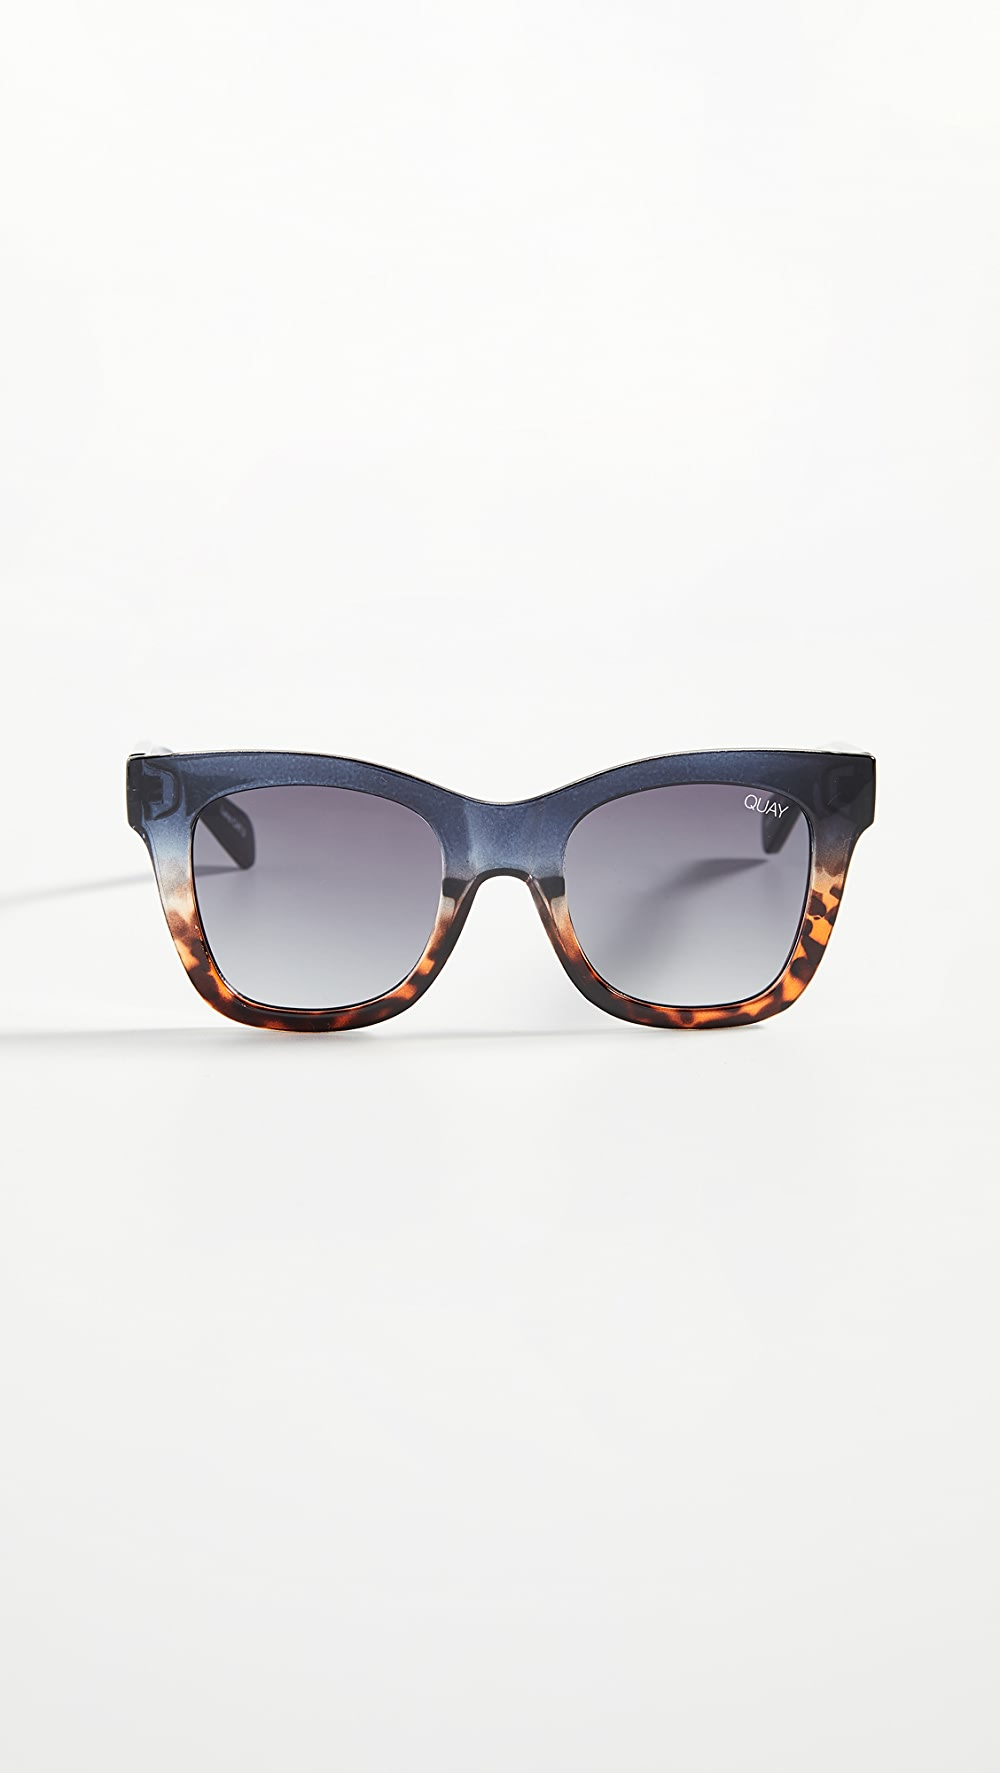 Bright Quay - After Hours Sunglasses Professional Design